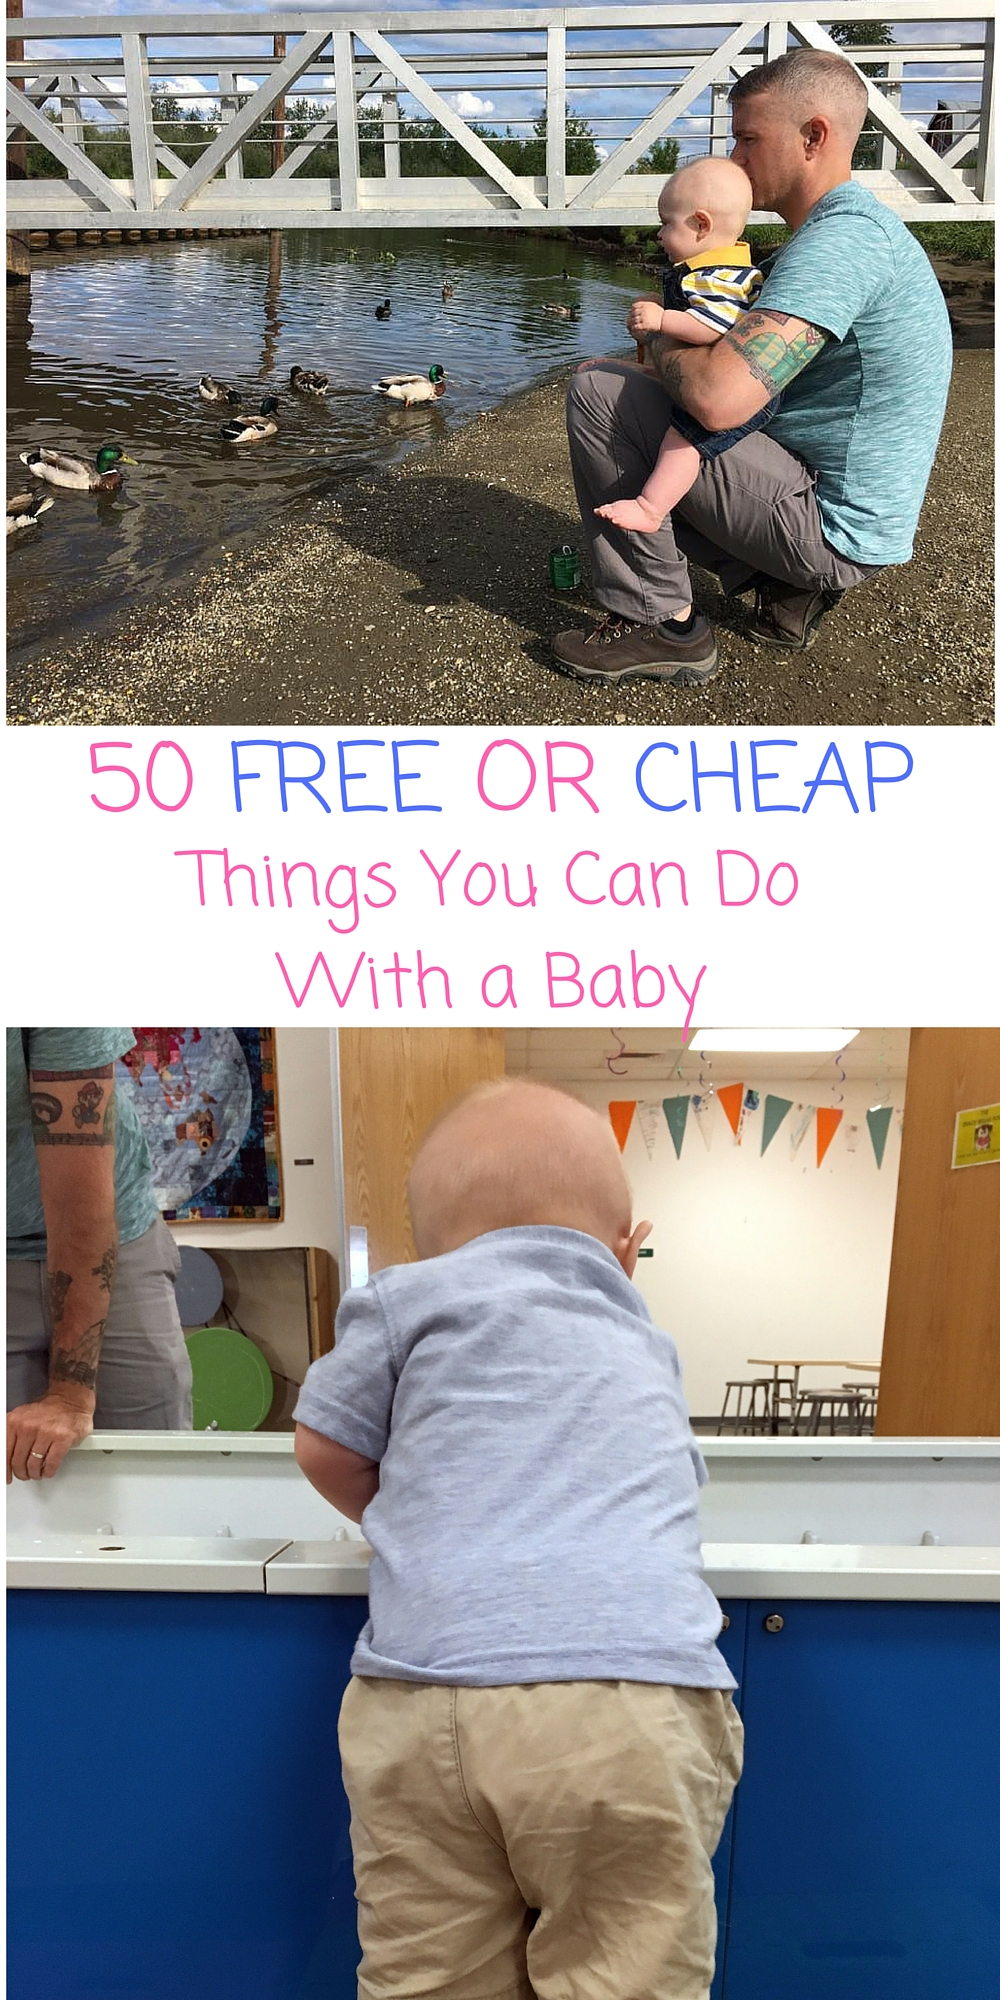 free or cheap things you can do with a baby